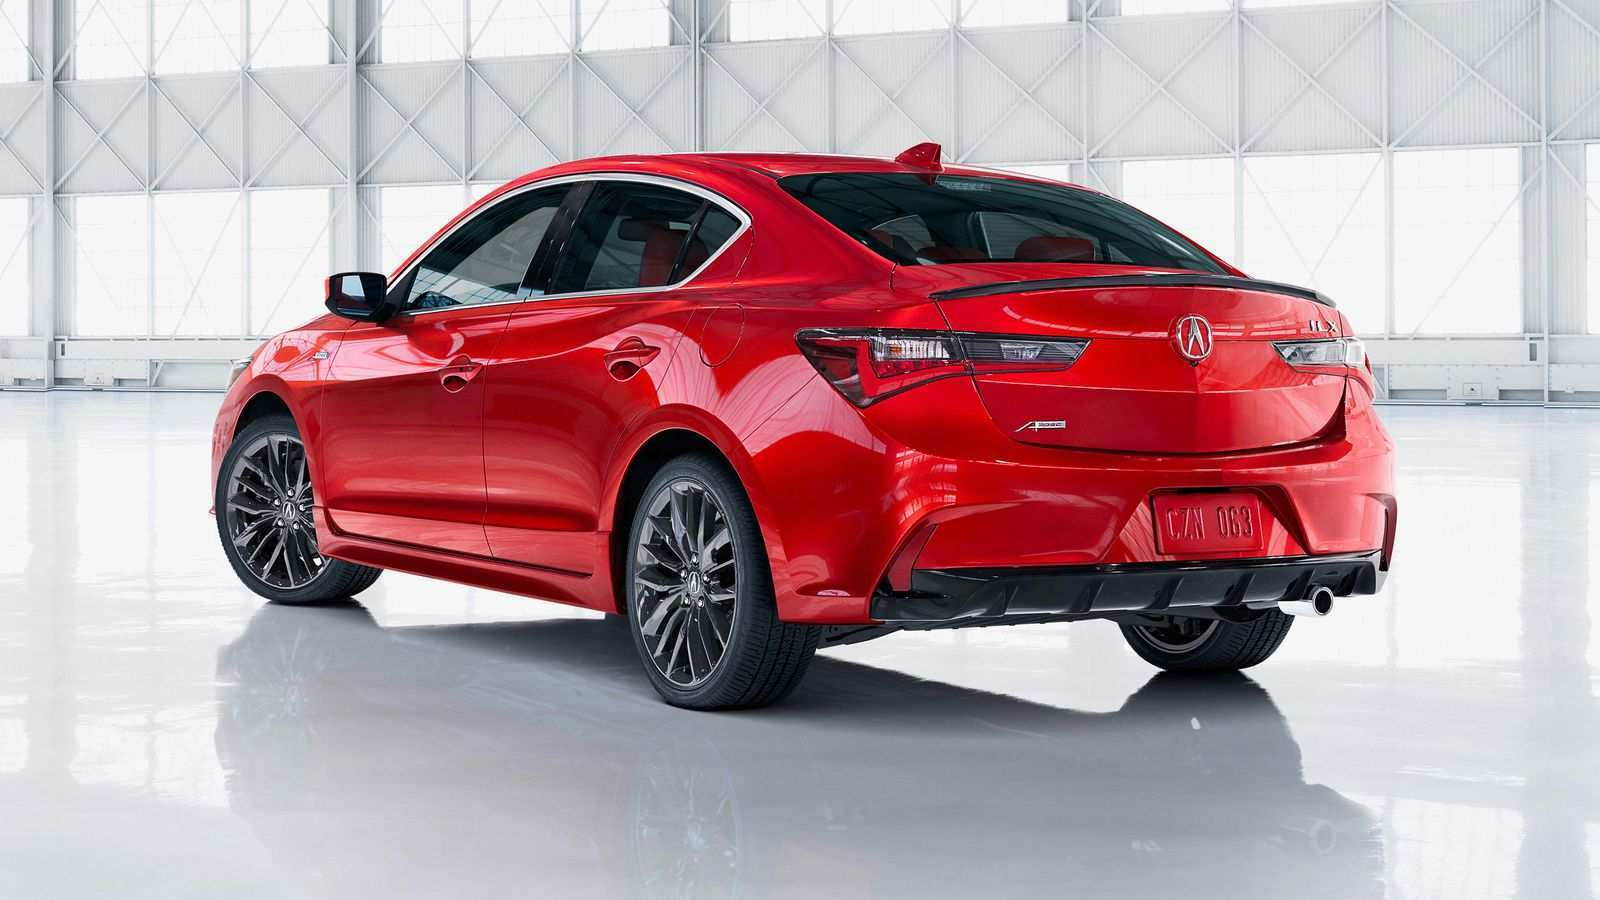 22 New 2019 Acura Ilx Engine with 2019 Acura Ilx